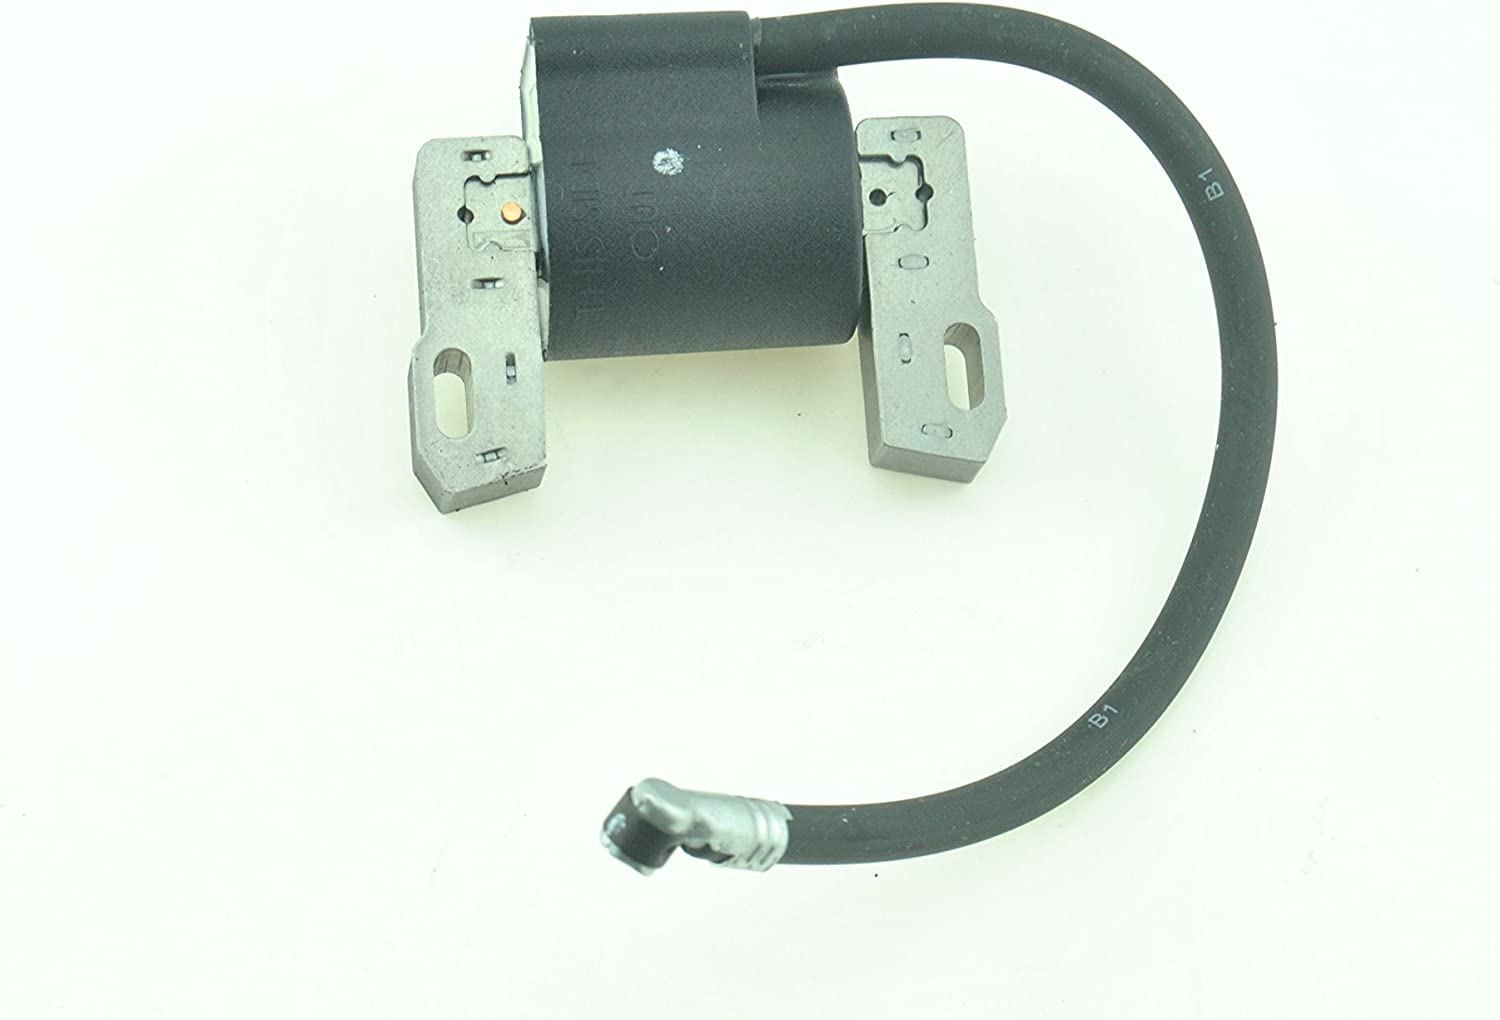 Details about  /THE DUKE/'S IGNITION COIL FITS BRIGGS /& STRATTON 490586 491312 492341 592846